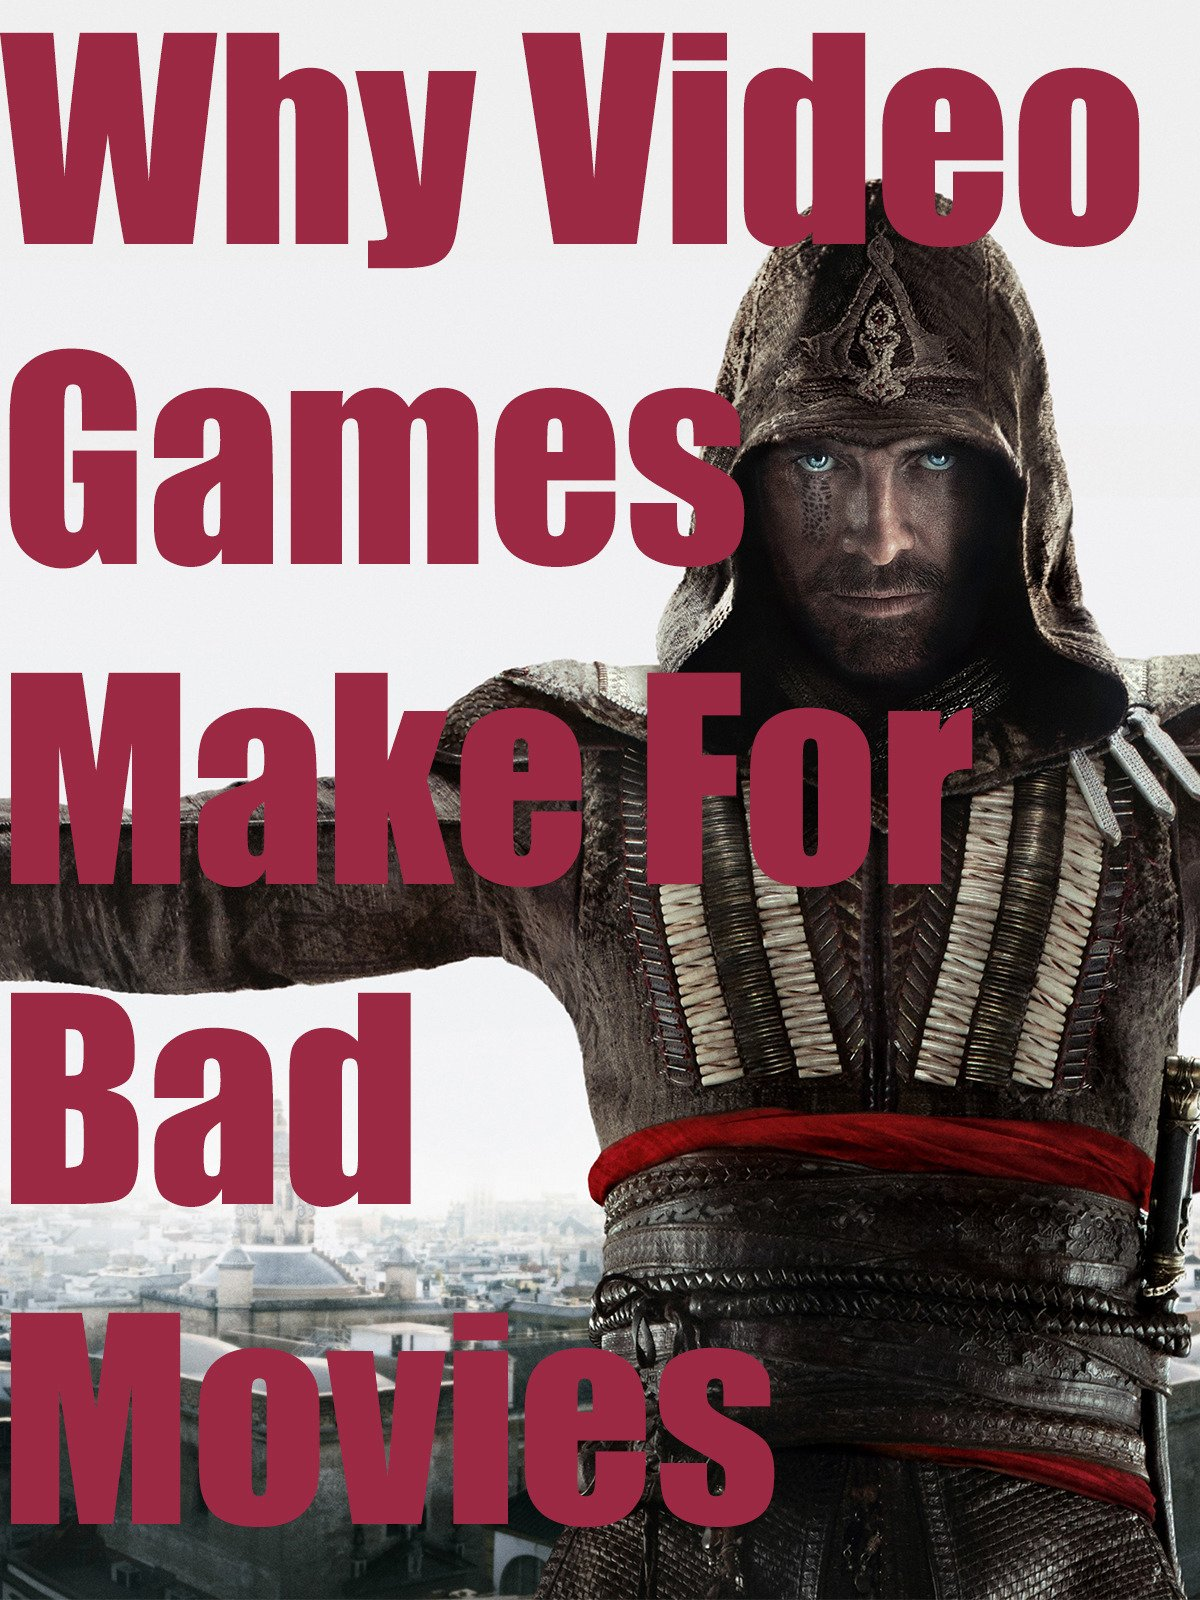 Clip: Why Video Games Make For Bad Movies